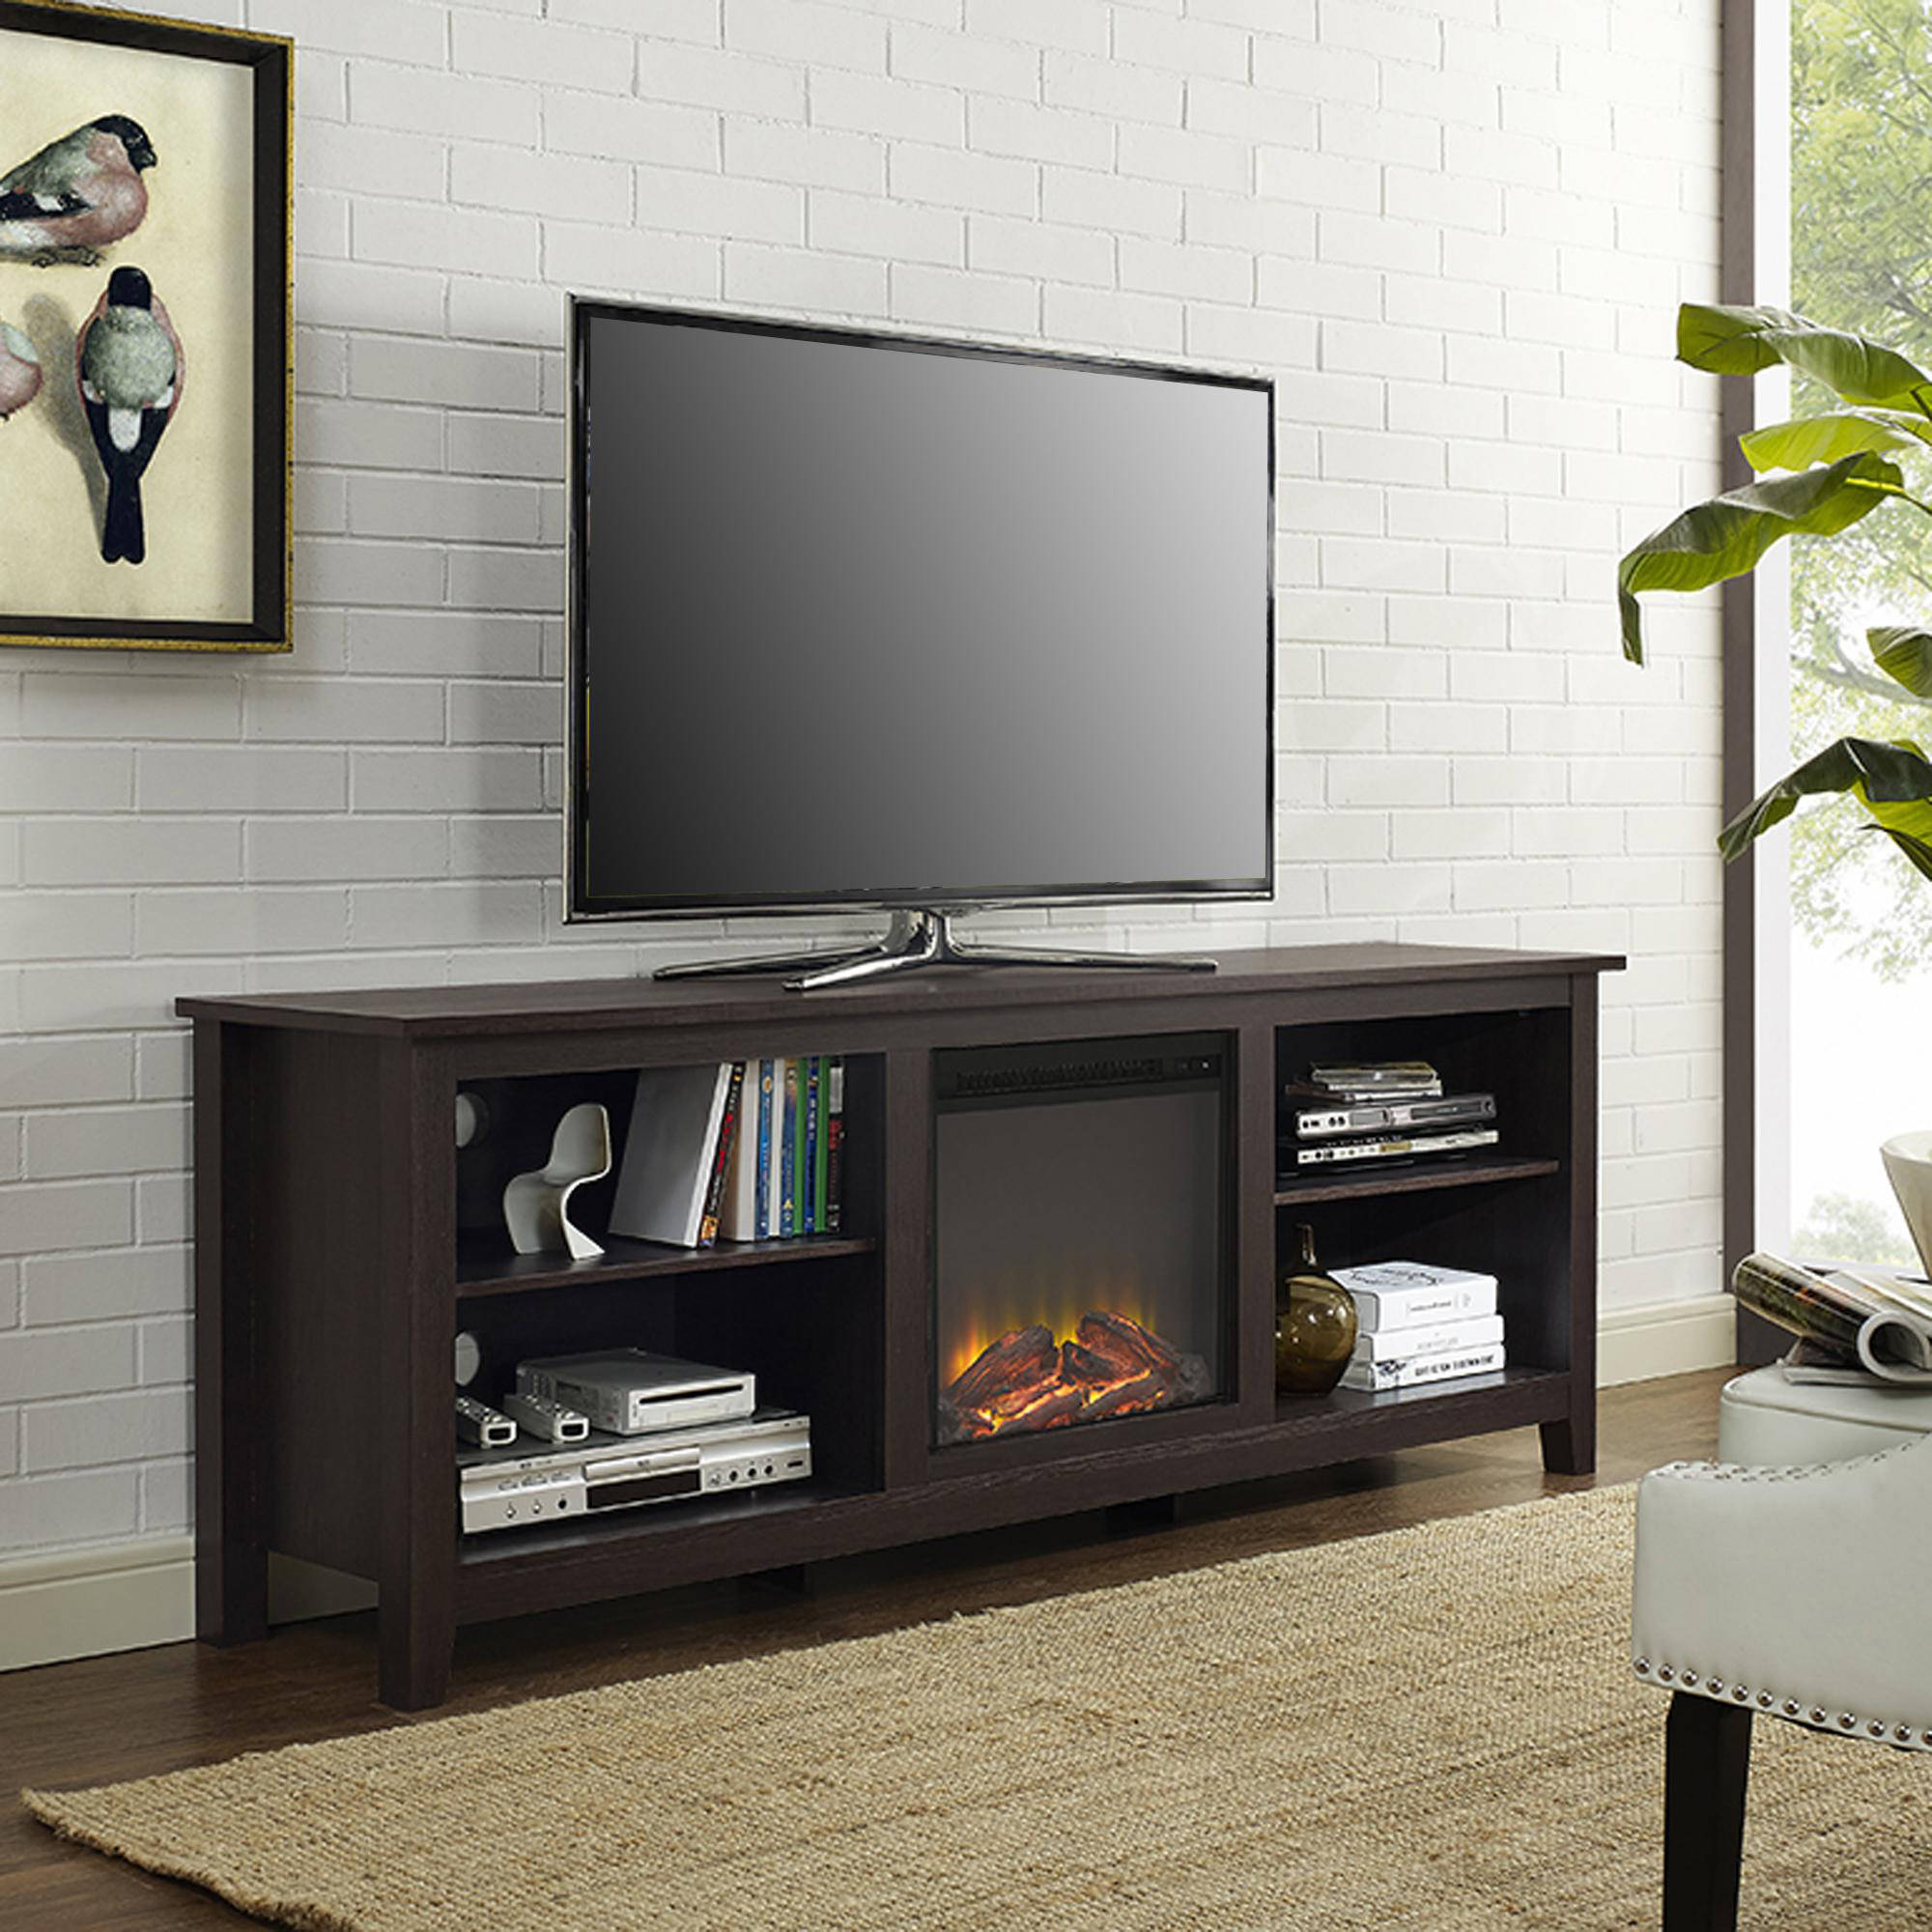 "Newest Wood Tv Entertainment Stands For 70"" Fireplace Tv Media Storage Stand For Tv's Up To 75"" Espresso (Gallery 3 of 20)"